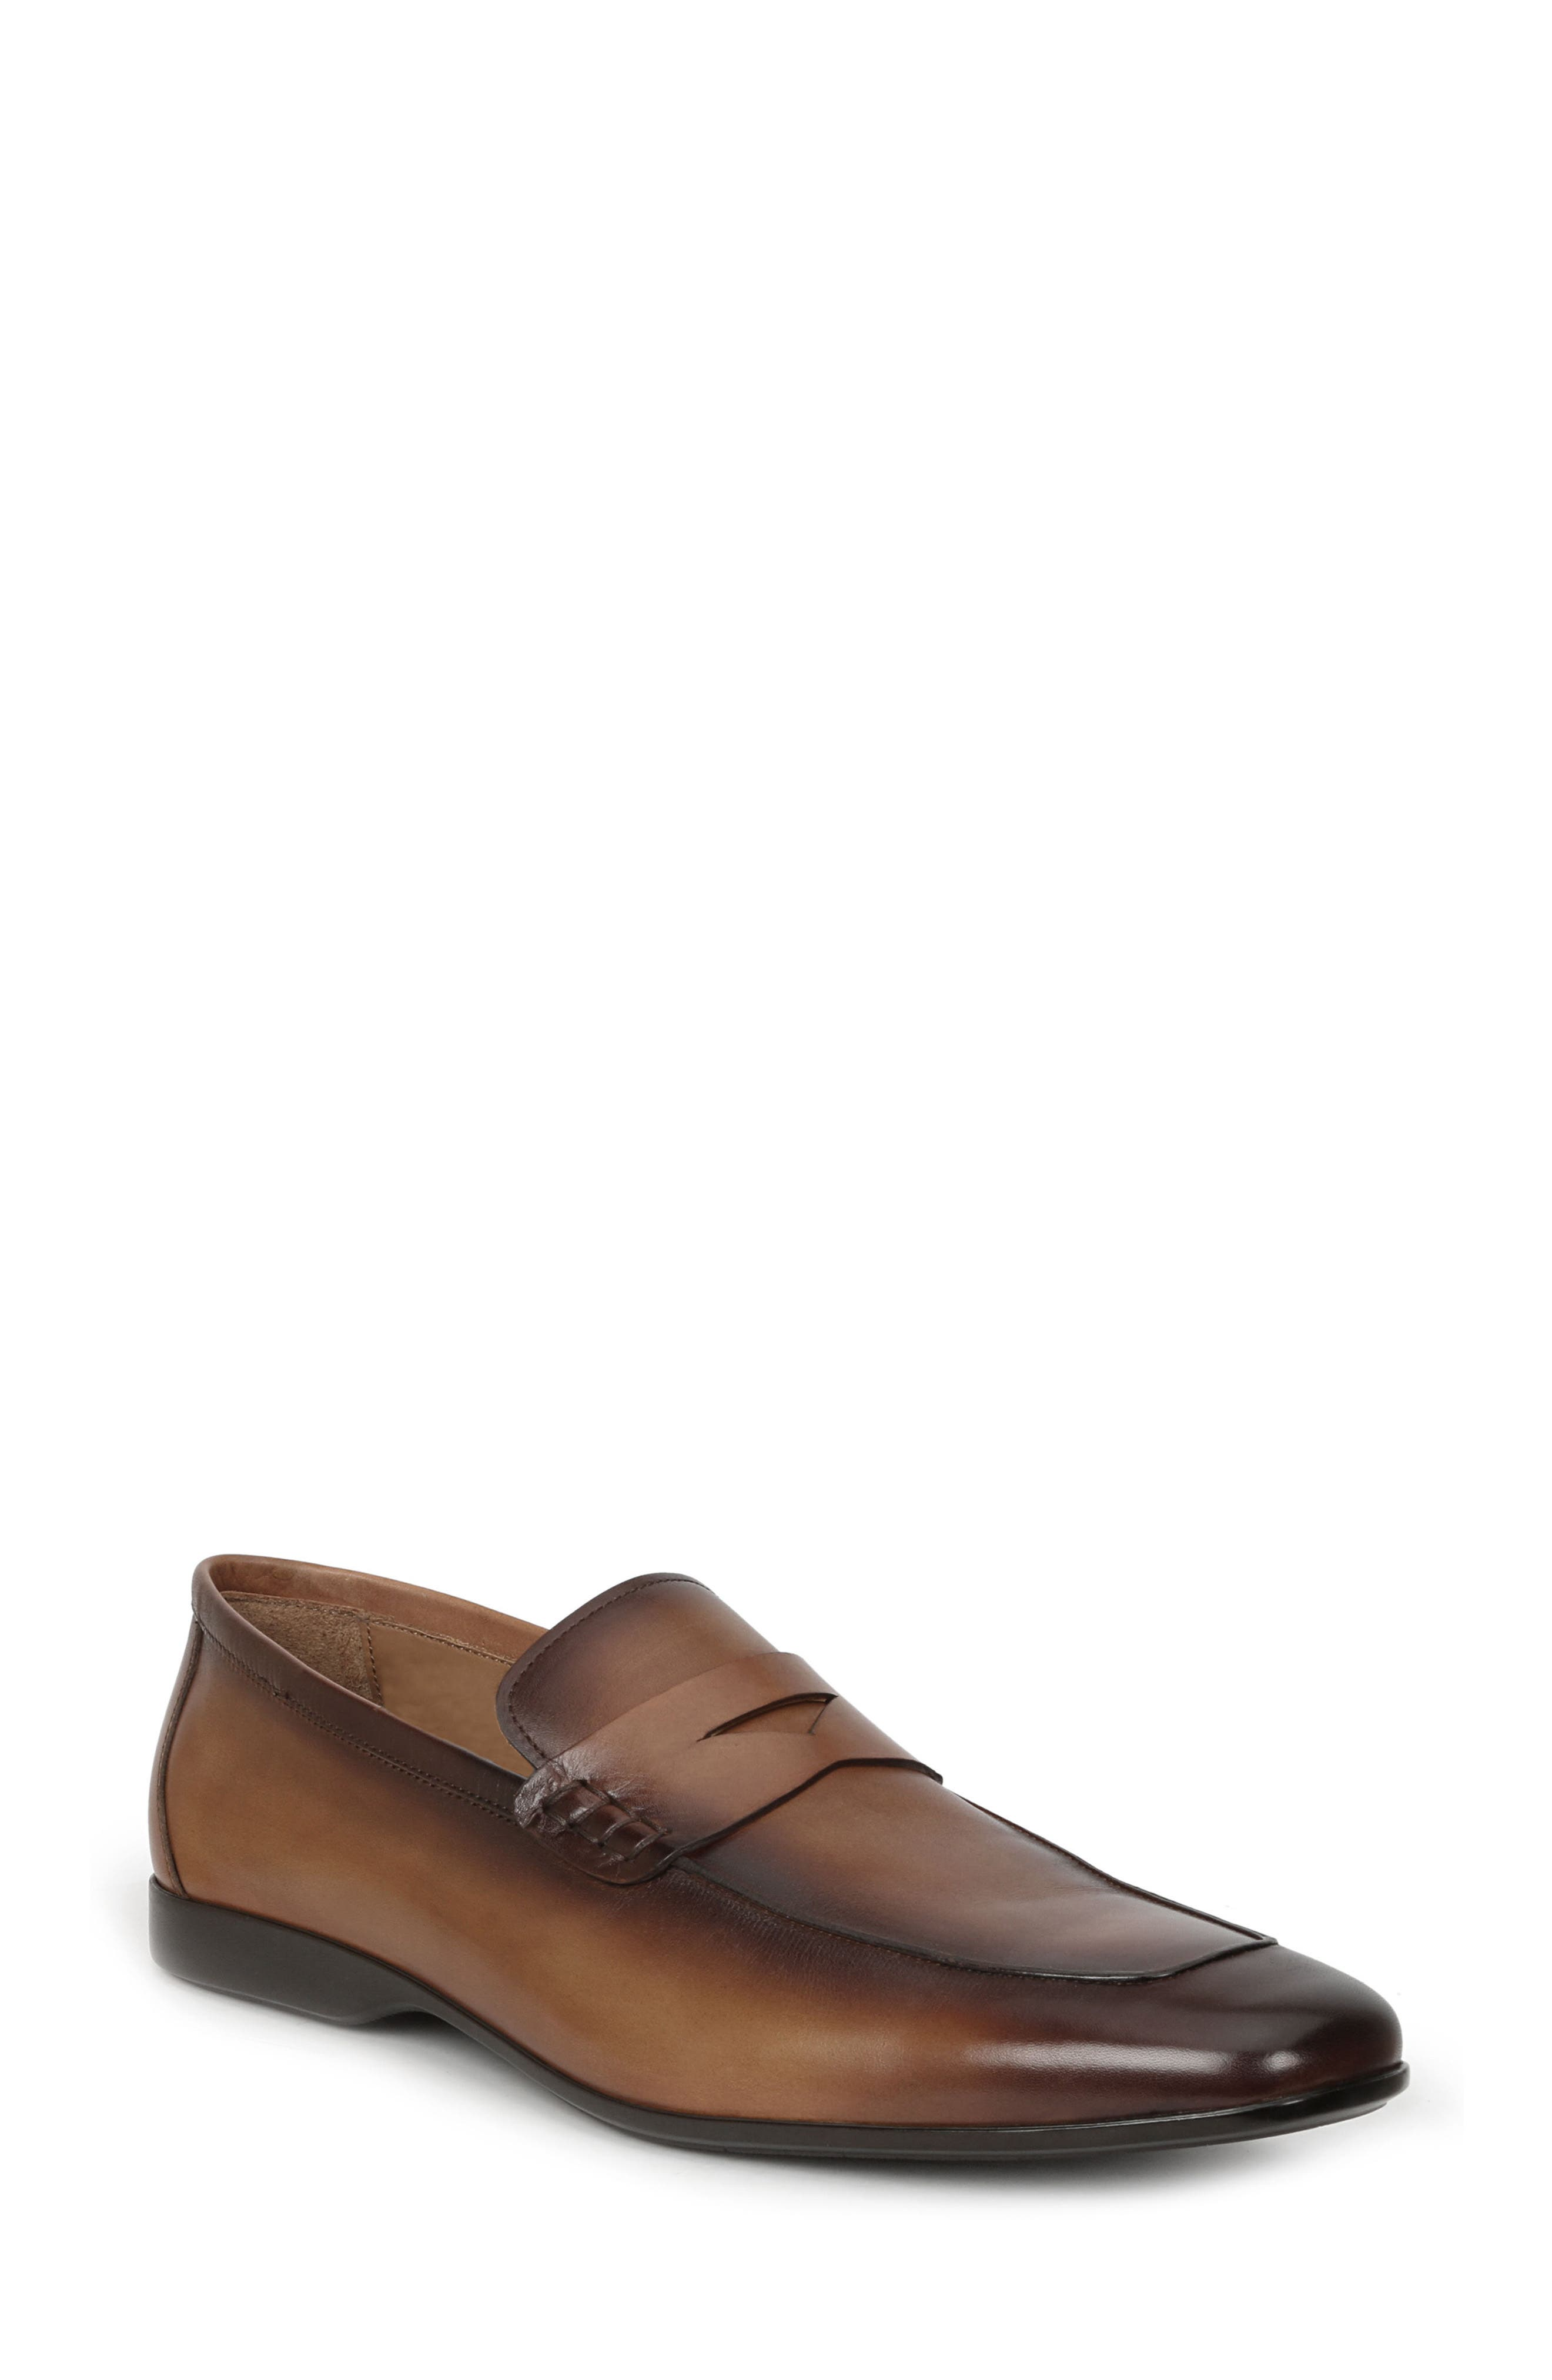 Margot Penny Loafer,                         Main,                         color, Cognac